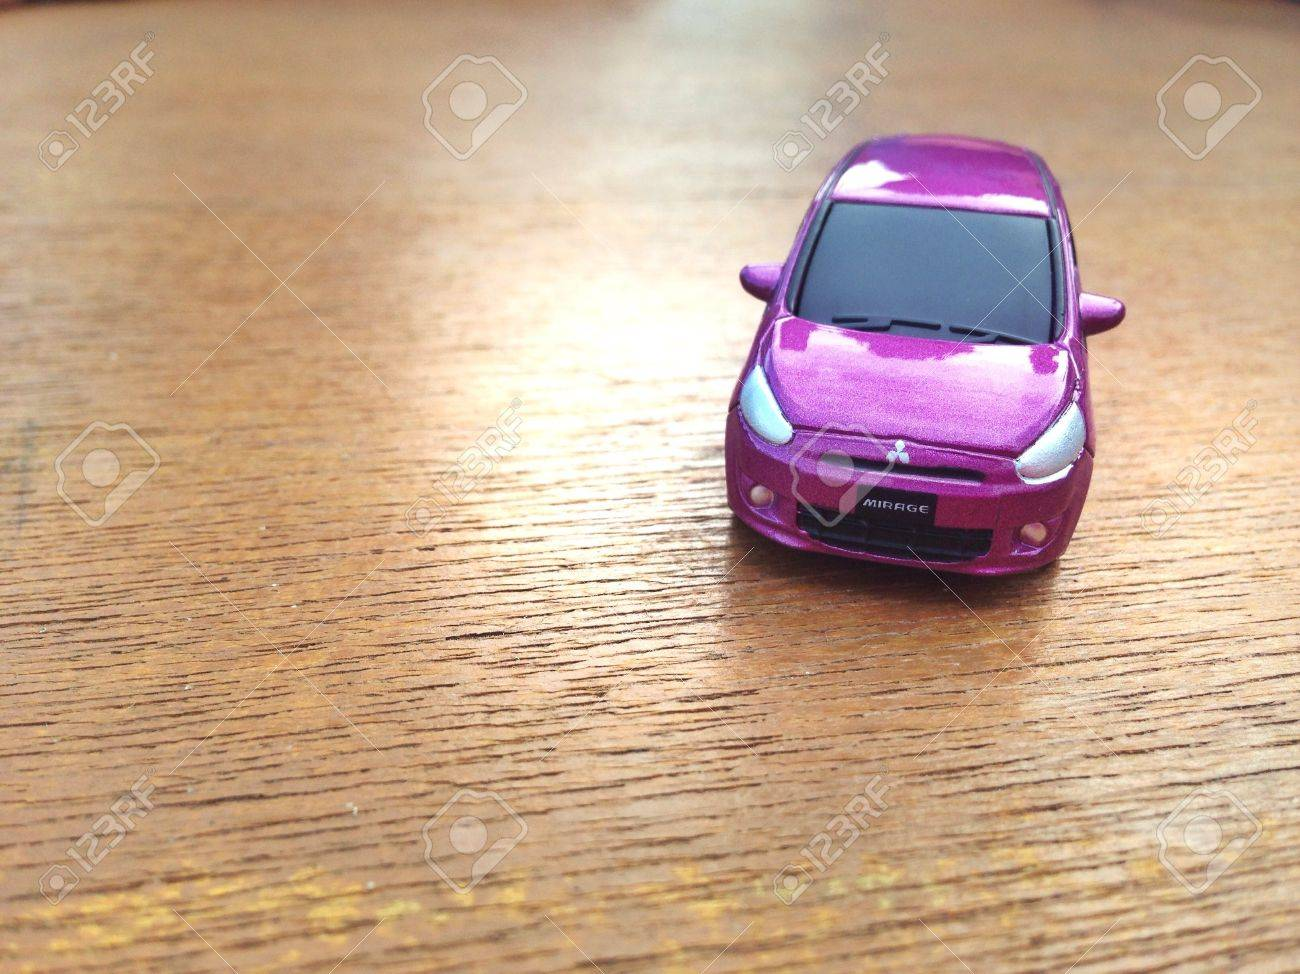 mitsubishi mirage toy car pink stock photo picture and royalty free